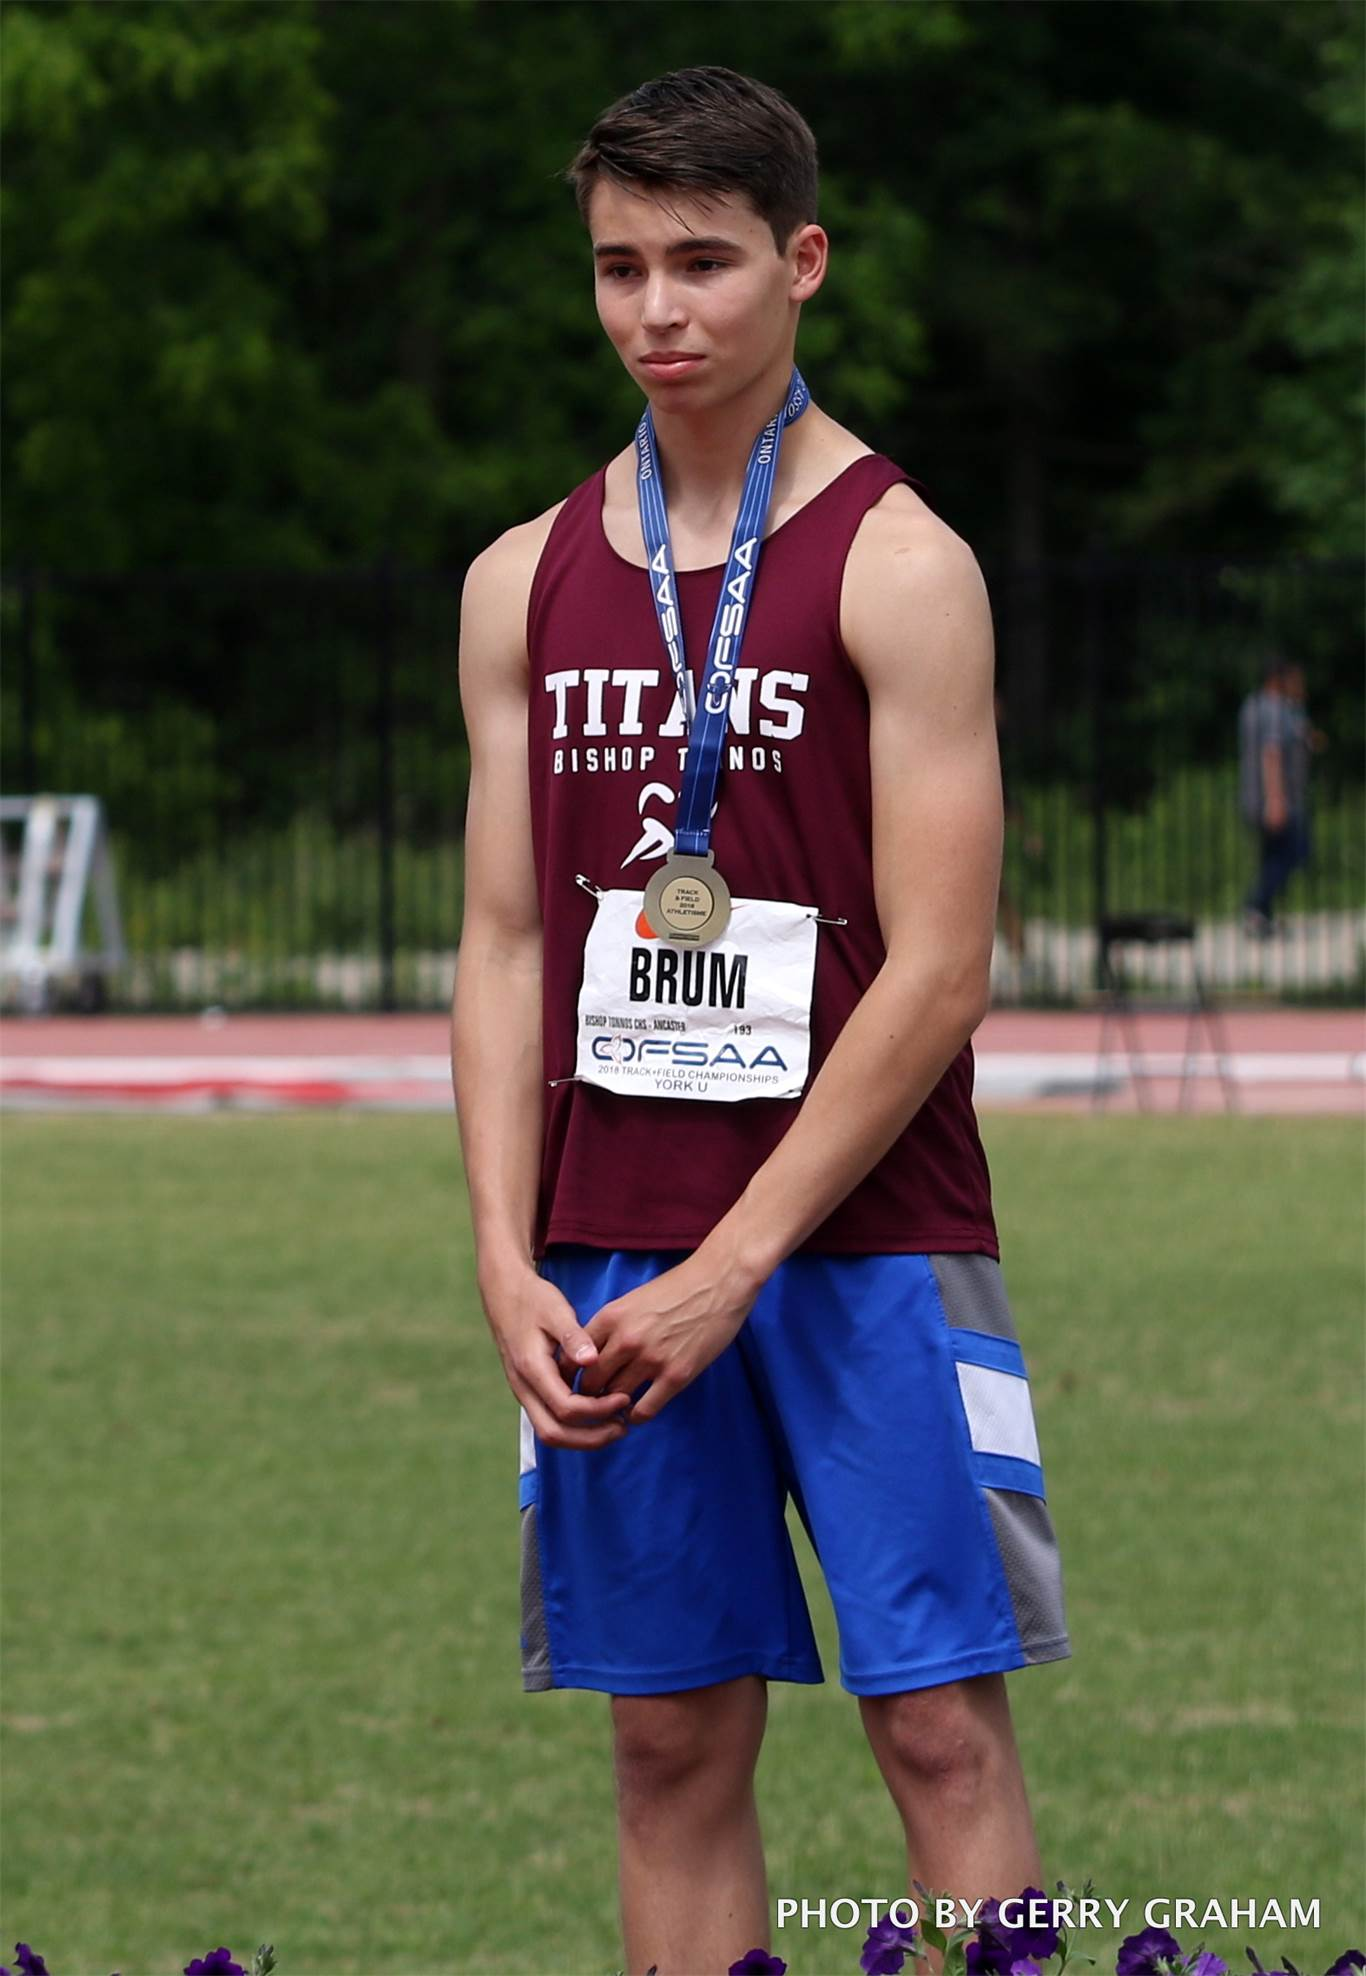 Tiago Brum of the Bishop Tonnos Titans sped to gold in the boys' visually impaired 800m (2:27.65). That added to his second-place showing from the day before in the 100m (13.96). Photo by Gerry Graham.